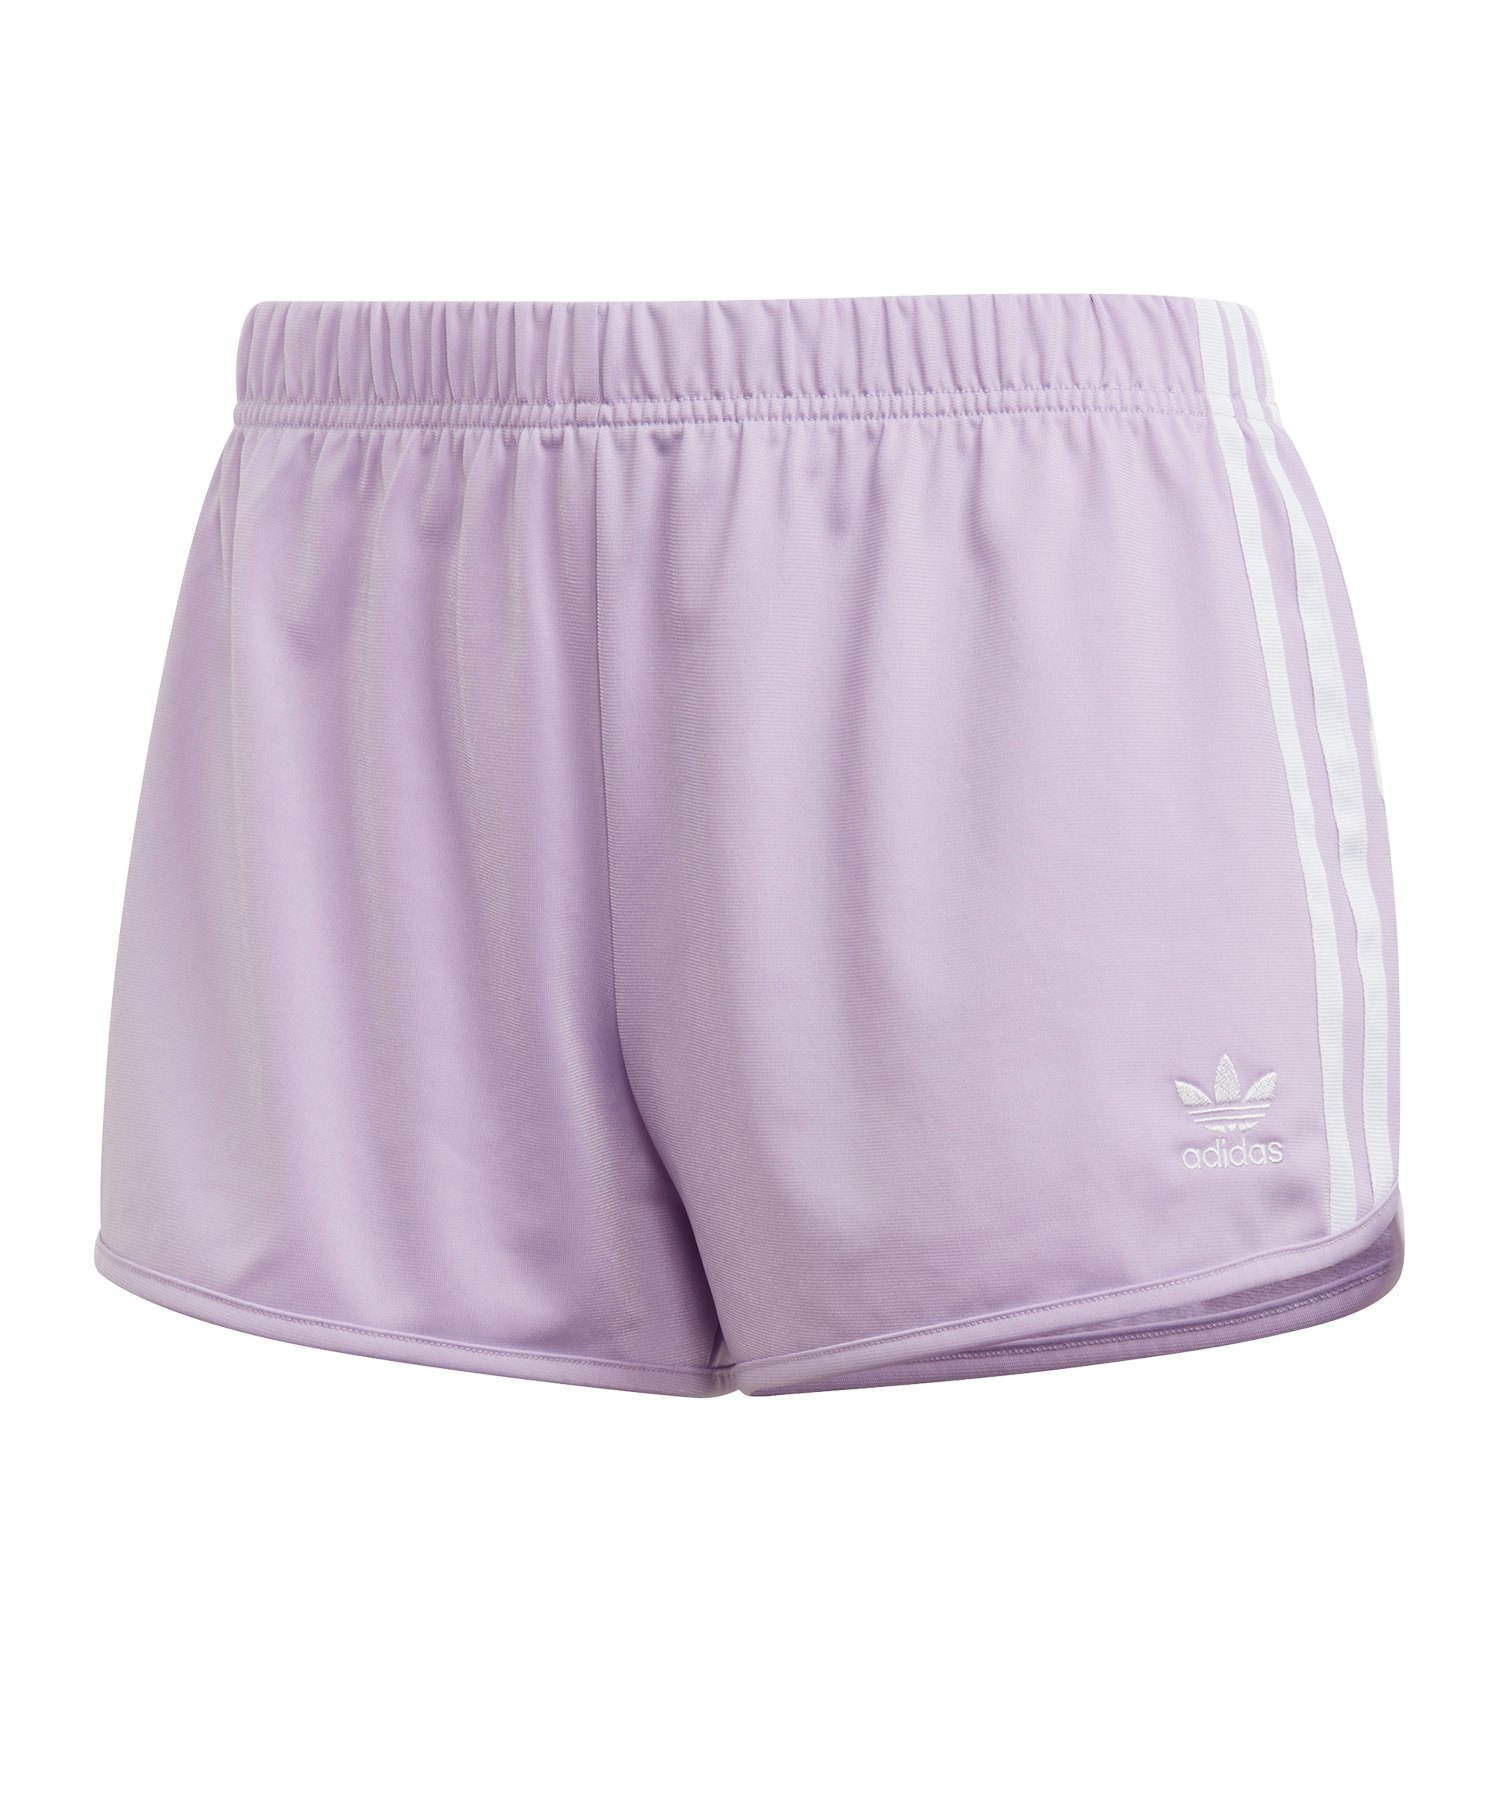 adidas Originals 3 Stripes Short Damen Lila